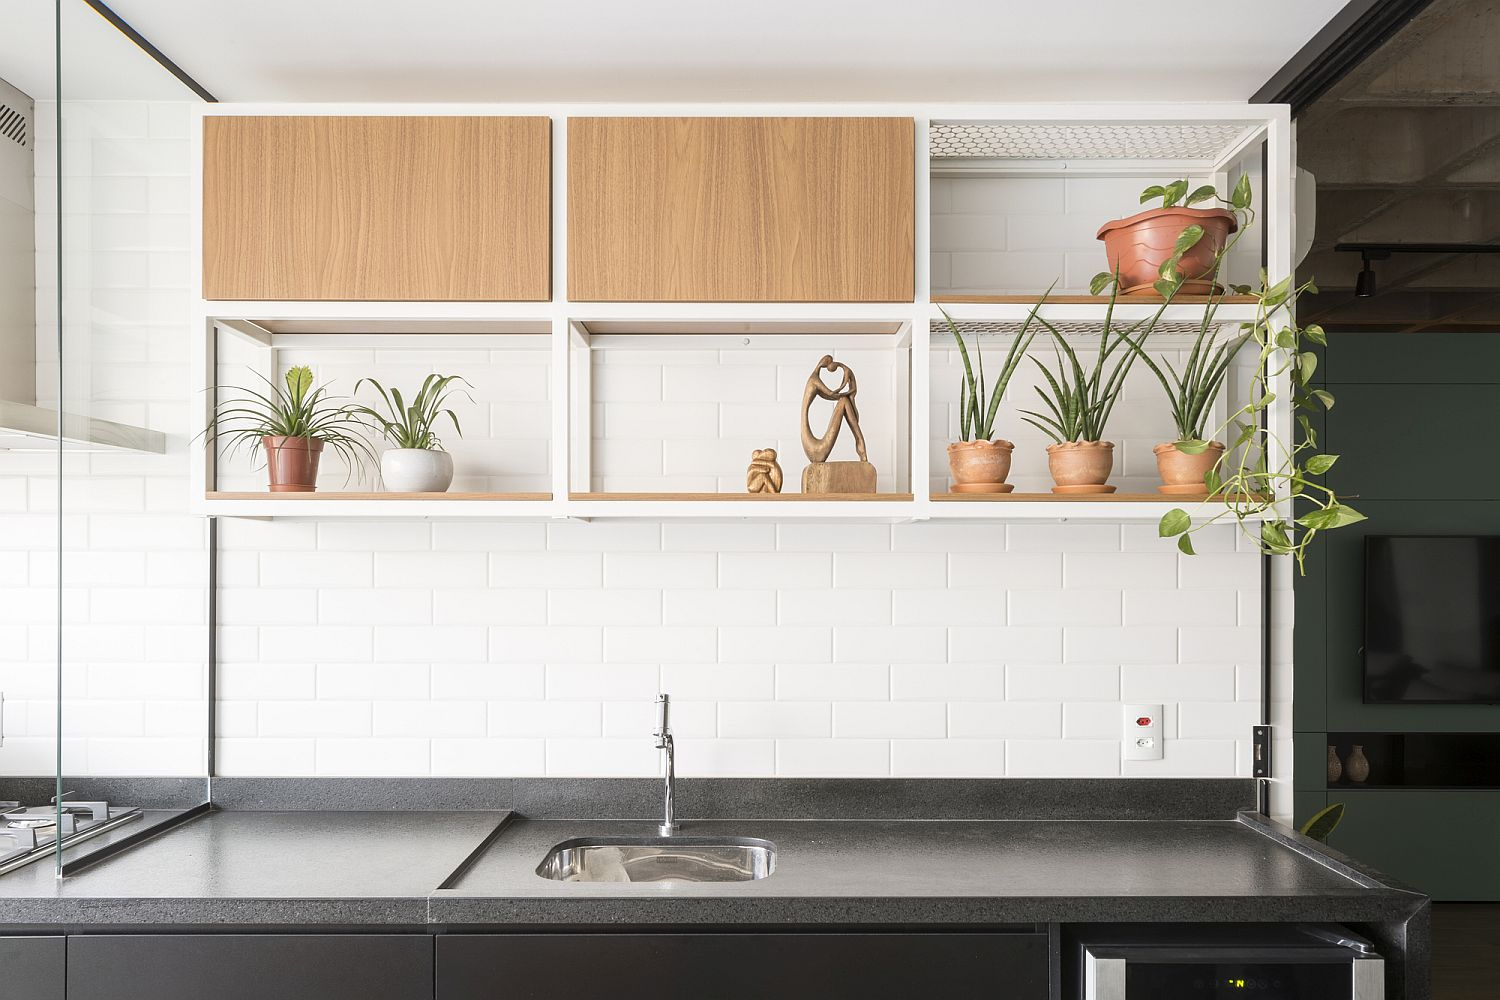 Wall in white tiles with greenery and small shelving in the kitchen